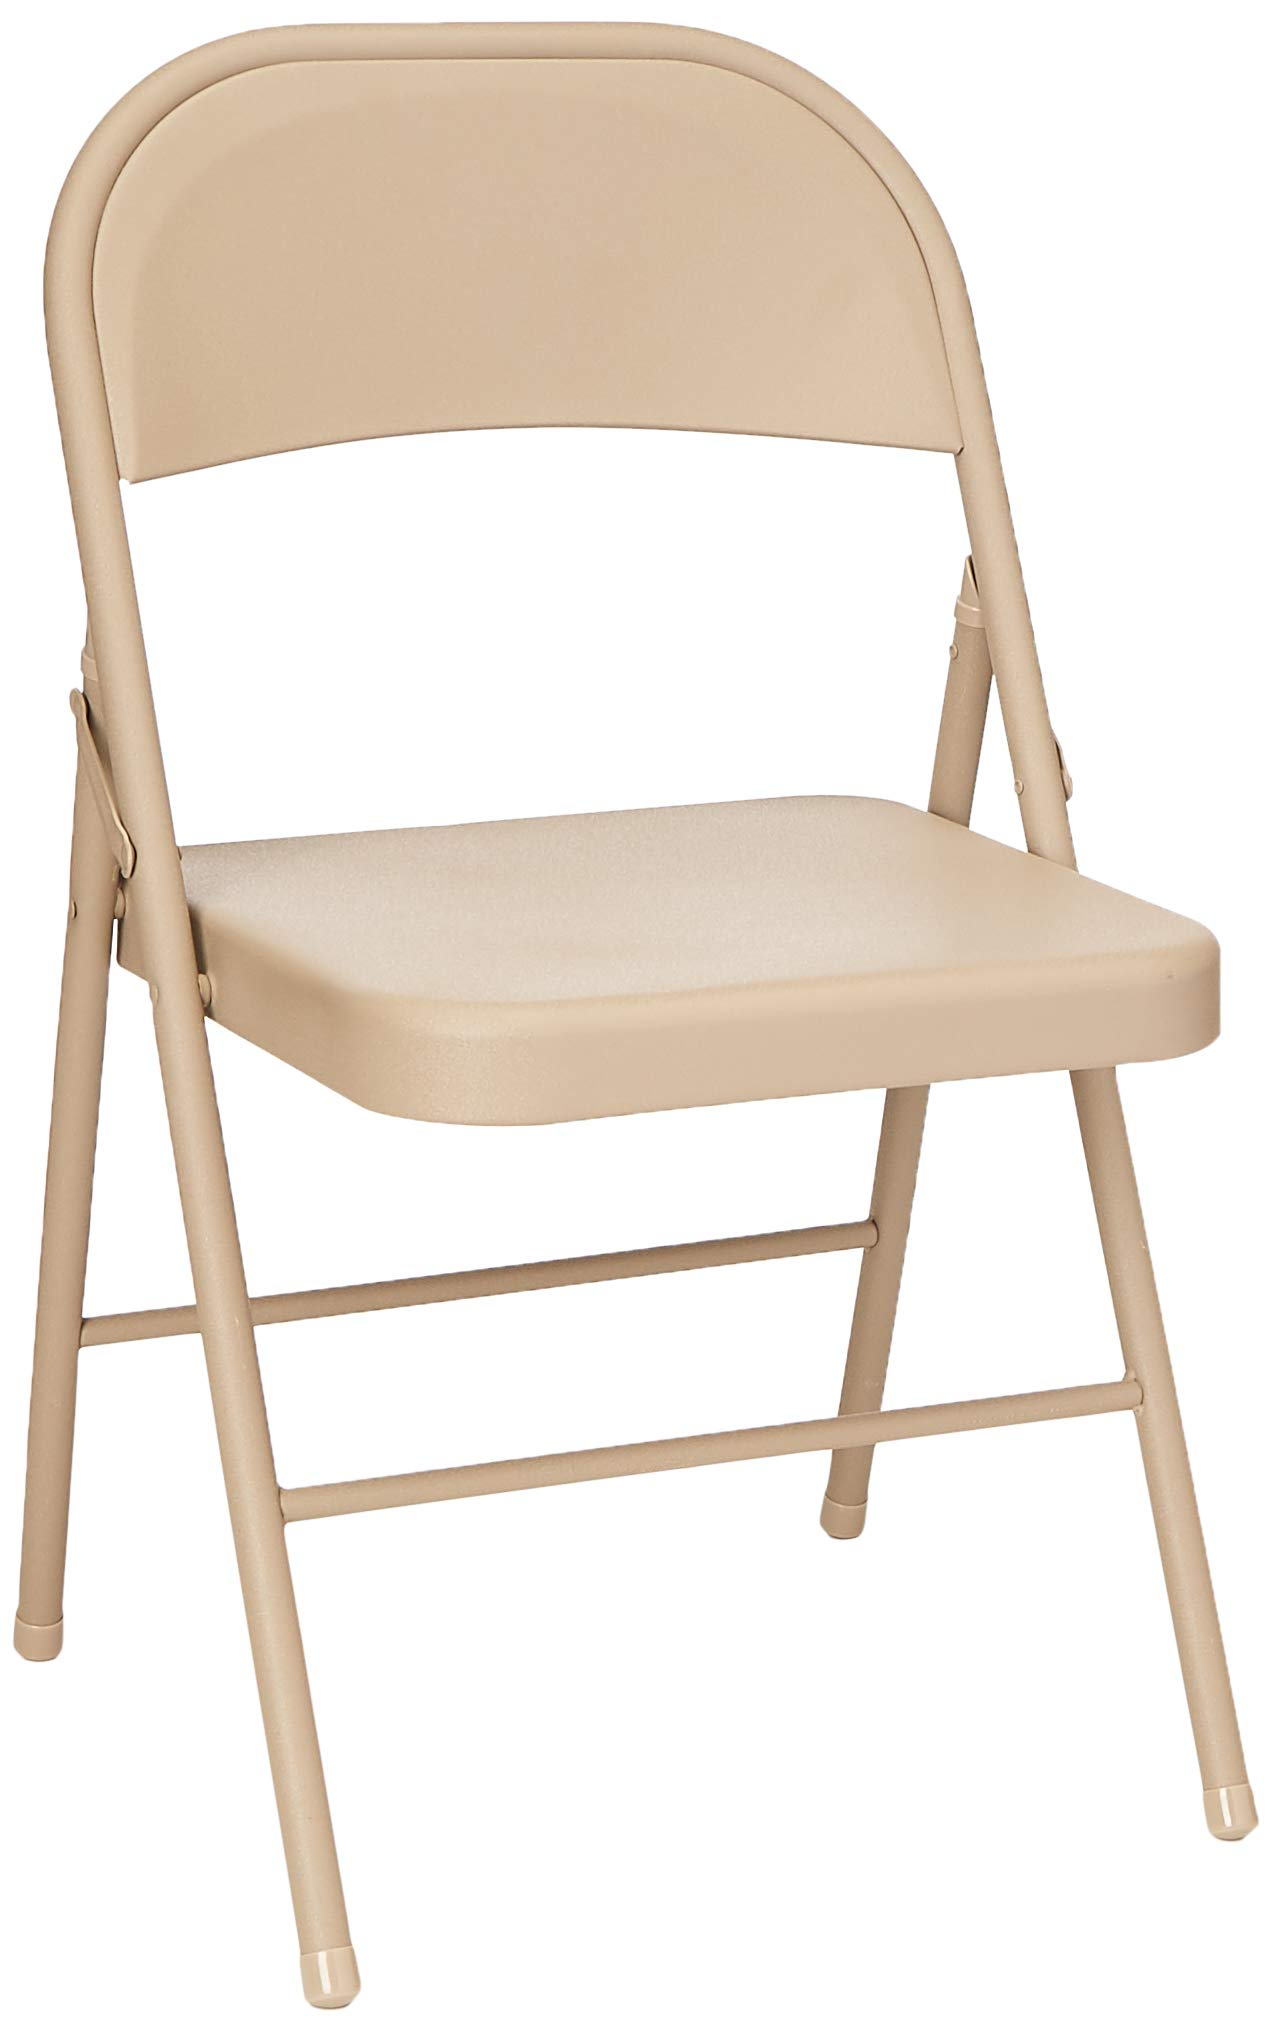 Cosco All Steel Folding Chair Antique Linen (4-pack) by Cosco